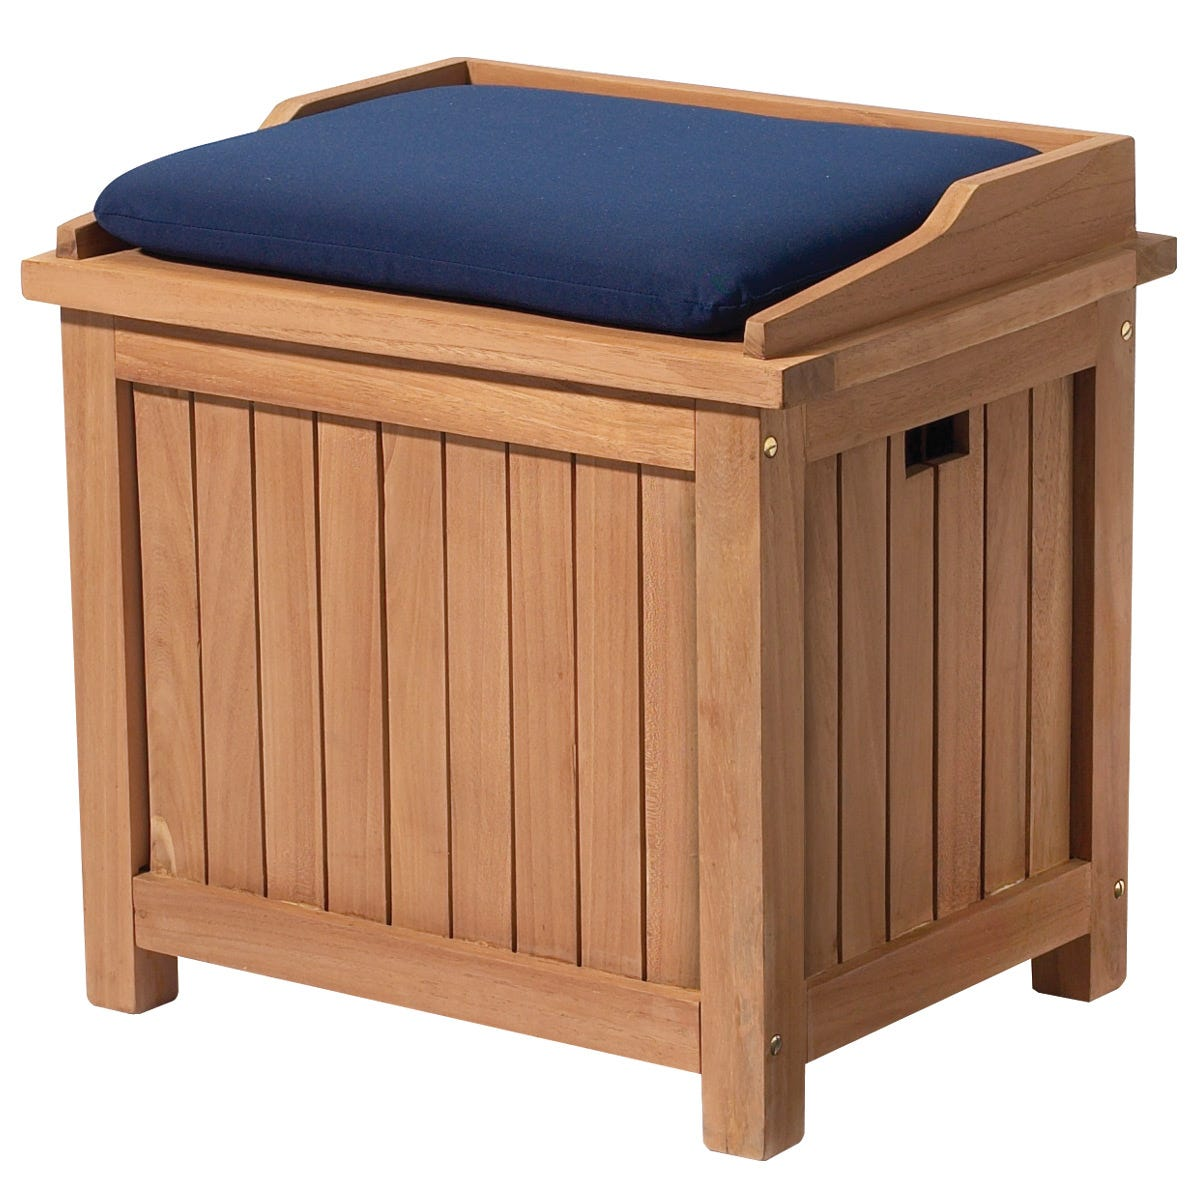 Teak Deck Box Small From Sporty S